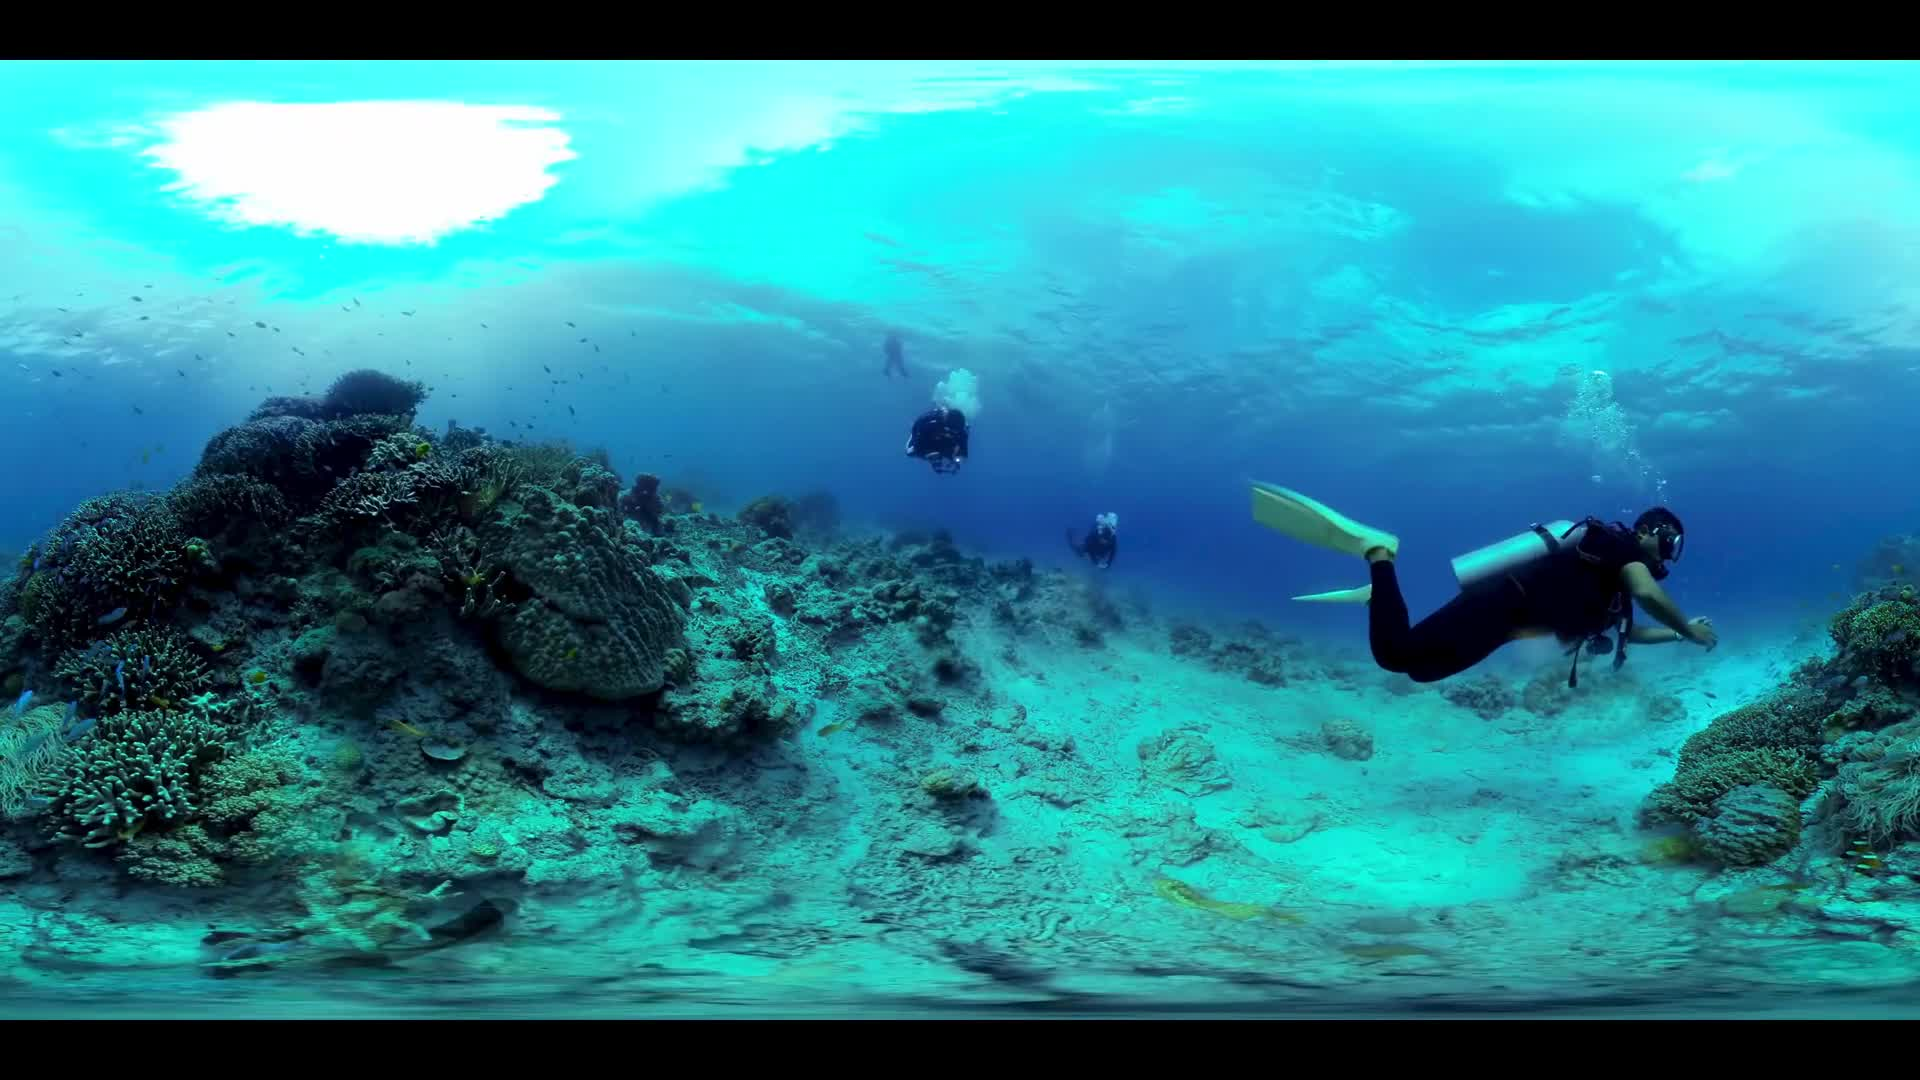 Great Barrier Reef Scuba Diving 360 VR - Multi-shot